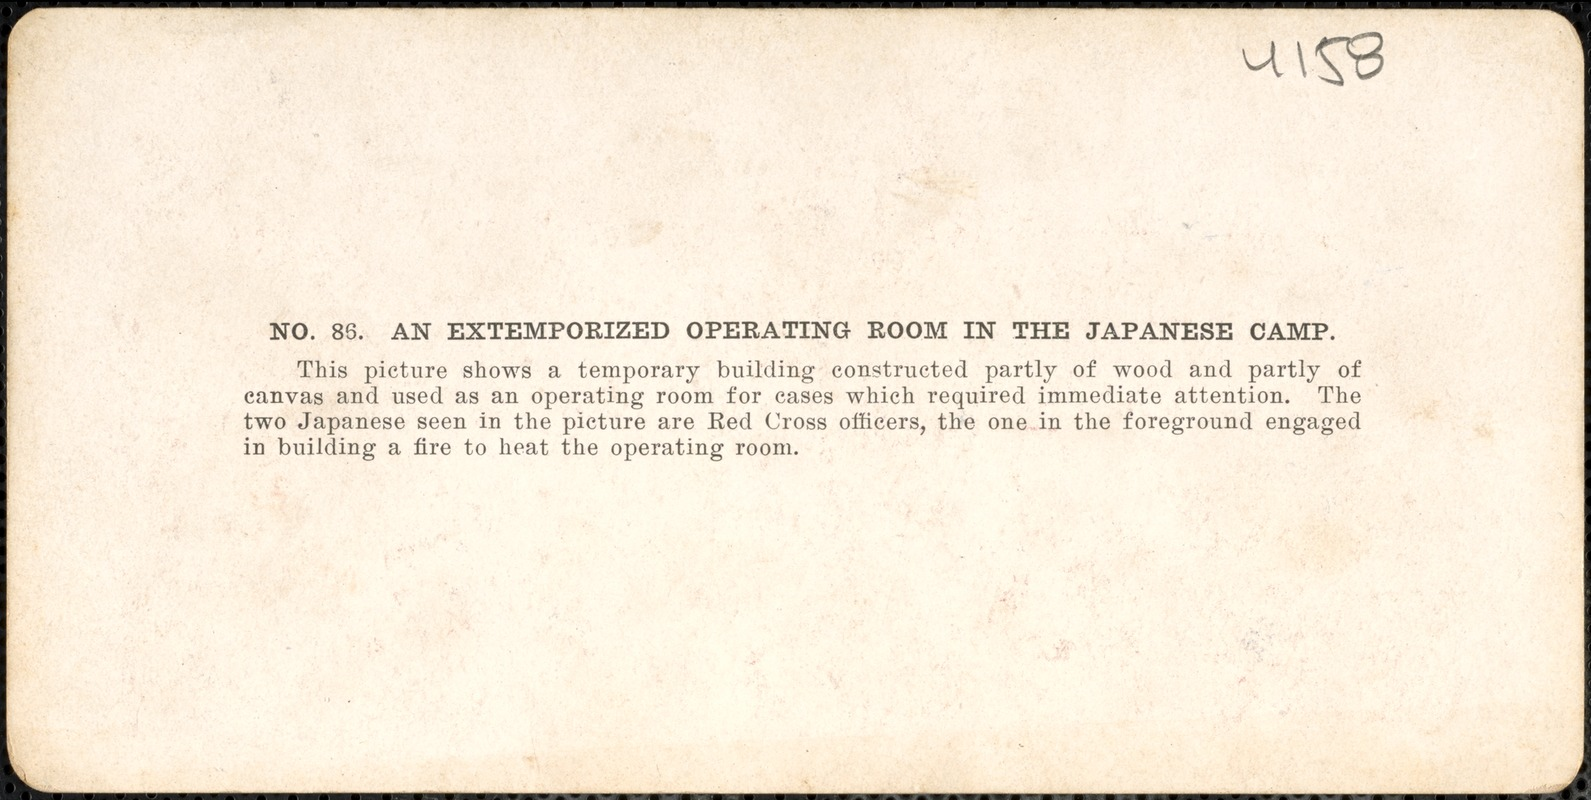 An extemporized operating room in the Japanese camp